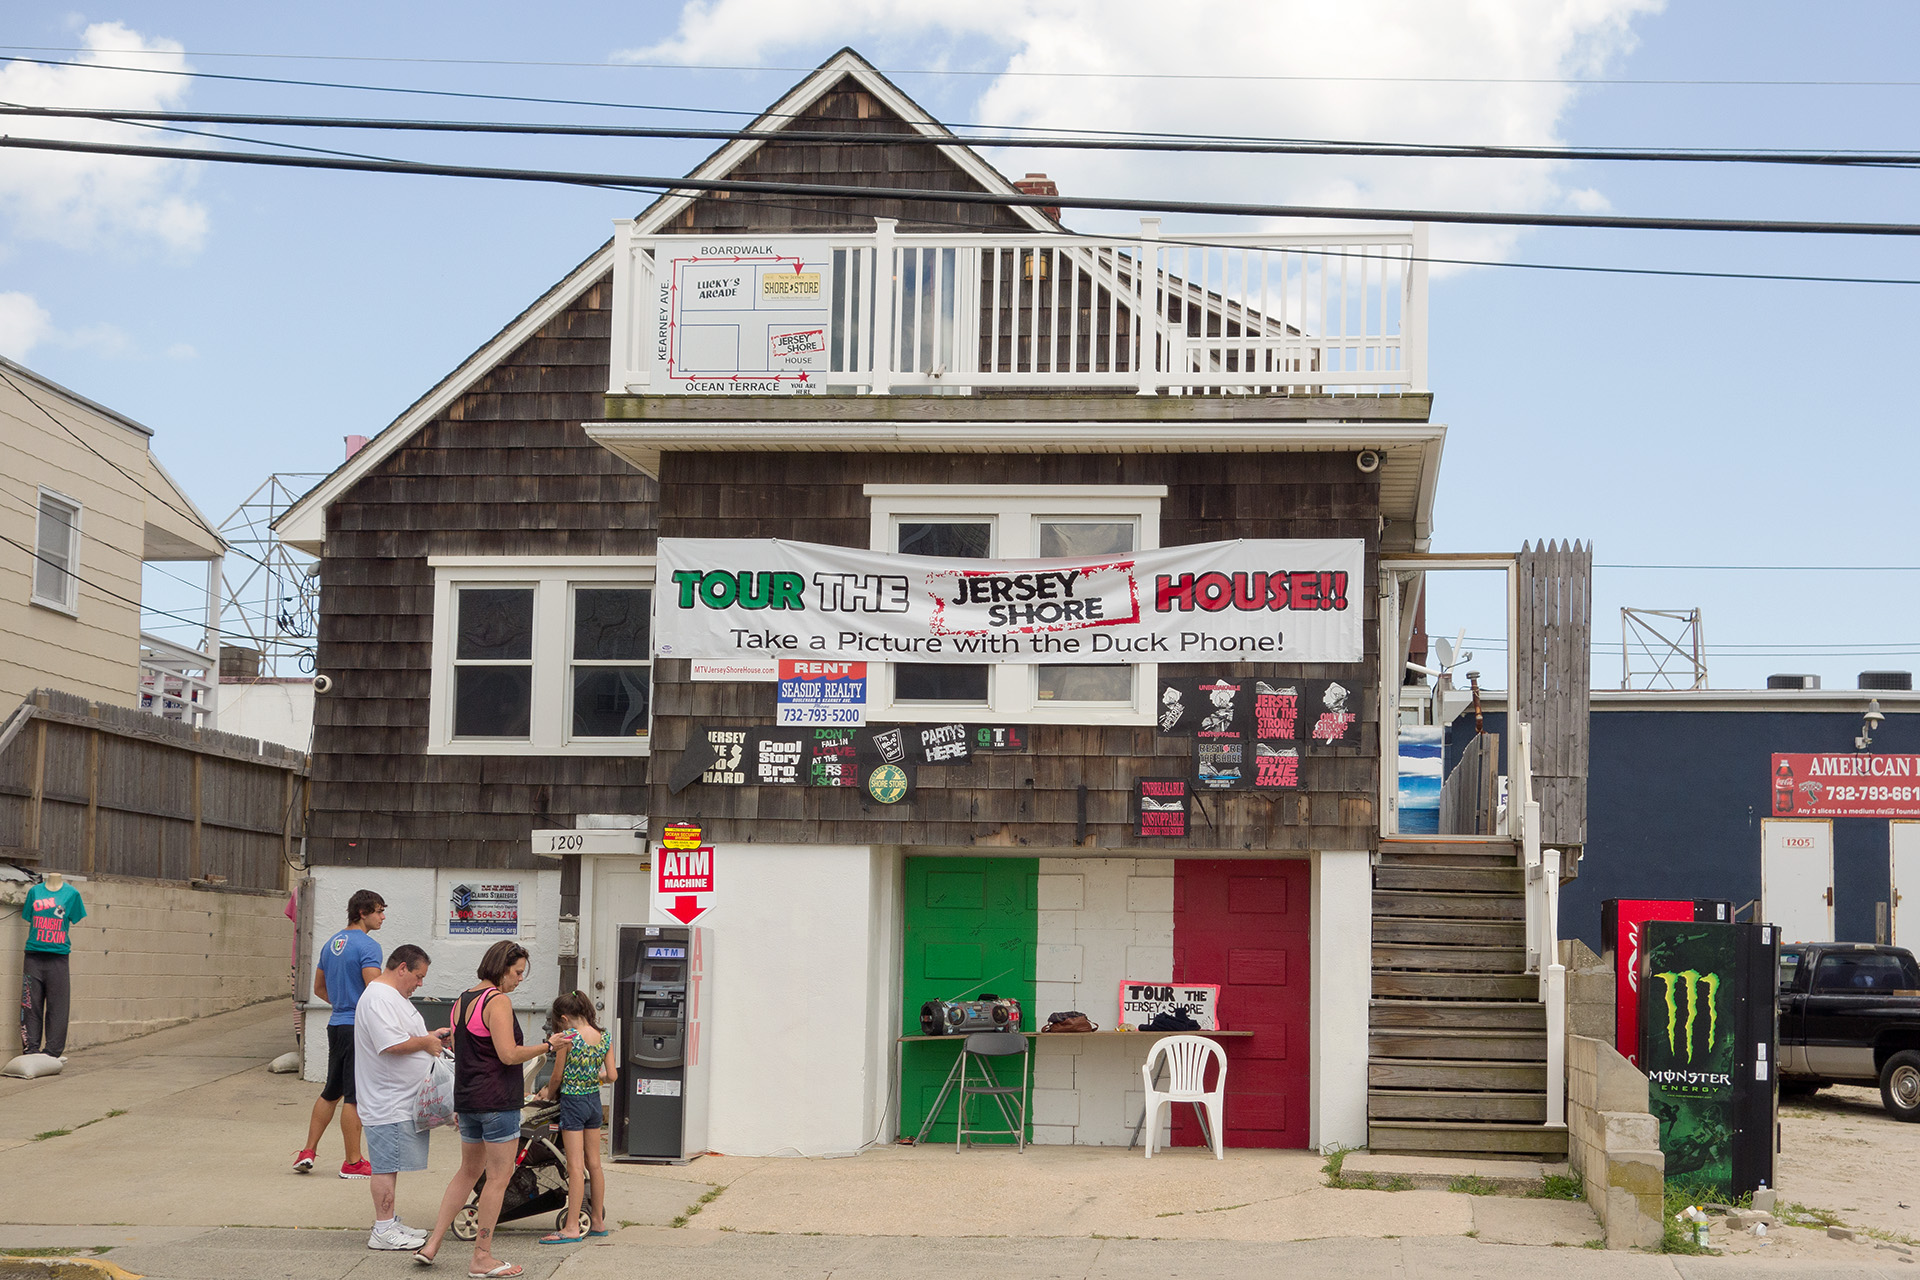 The famous Jersey Shore House.